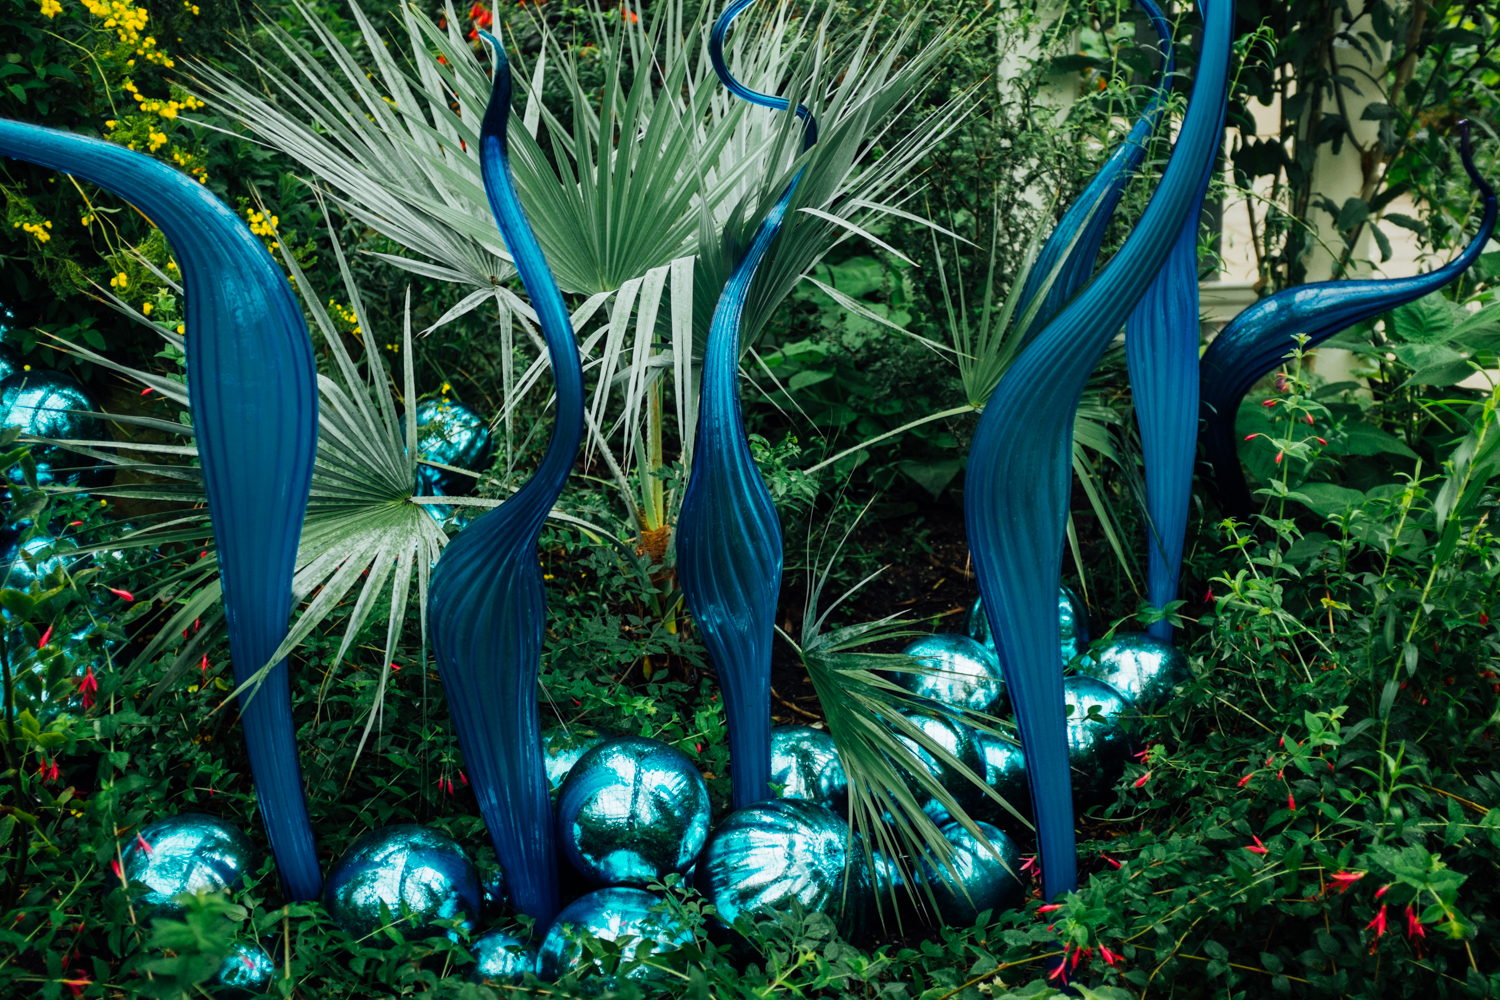 """Chihuly: Reflections on Nature"" is being shown at The Royal Botanic Gardens, Kew in London through October 27, 2019. Kew is 300 acres, and is the most diverse collection of living plants in the world. The Chihuly collection on display shows works of the Seattle artist from the past 50 years. Many pieces are being shown in the UK for the first time. (Image: Elizabeth Crook / Seattle Refined){ }"